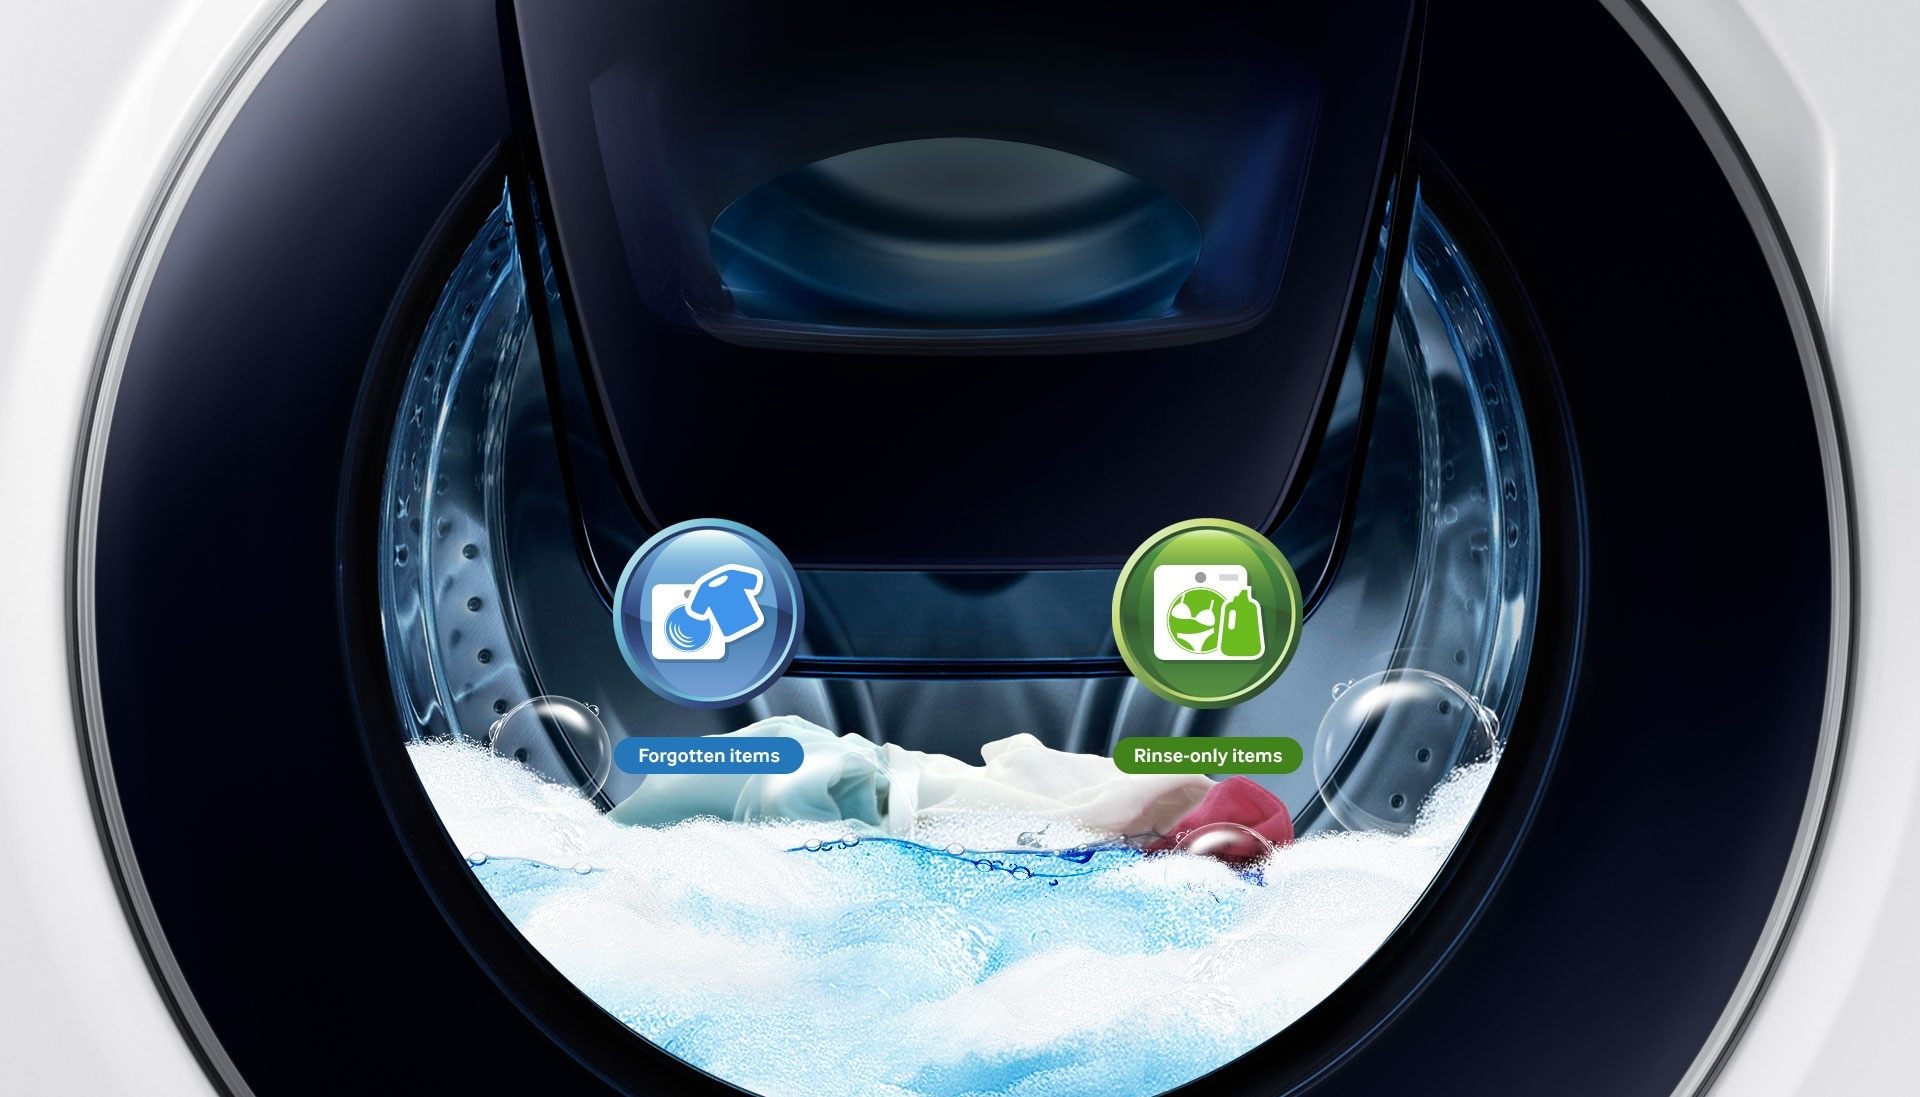 An image showing the WW8500's drum, as well as icons representing items the user has forgotten to add to the wash, and rinse-only items and fabric softener – all of which can be added via the Add Door.